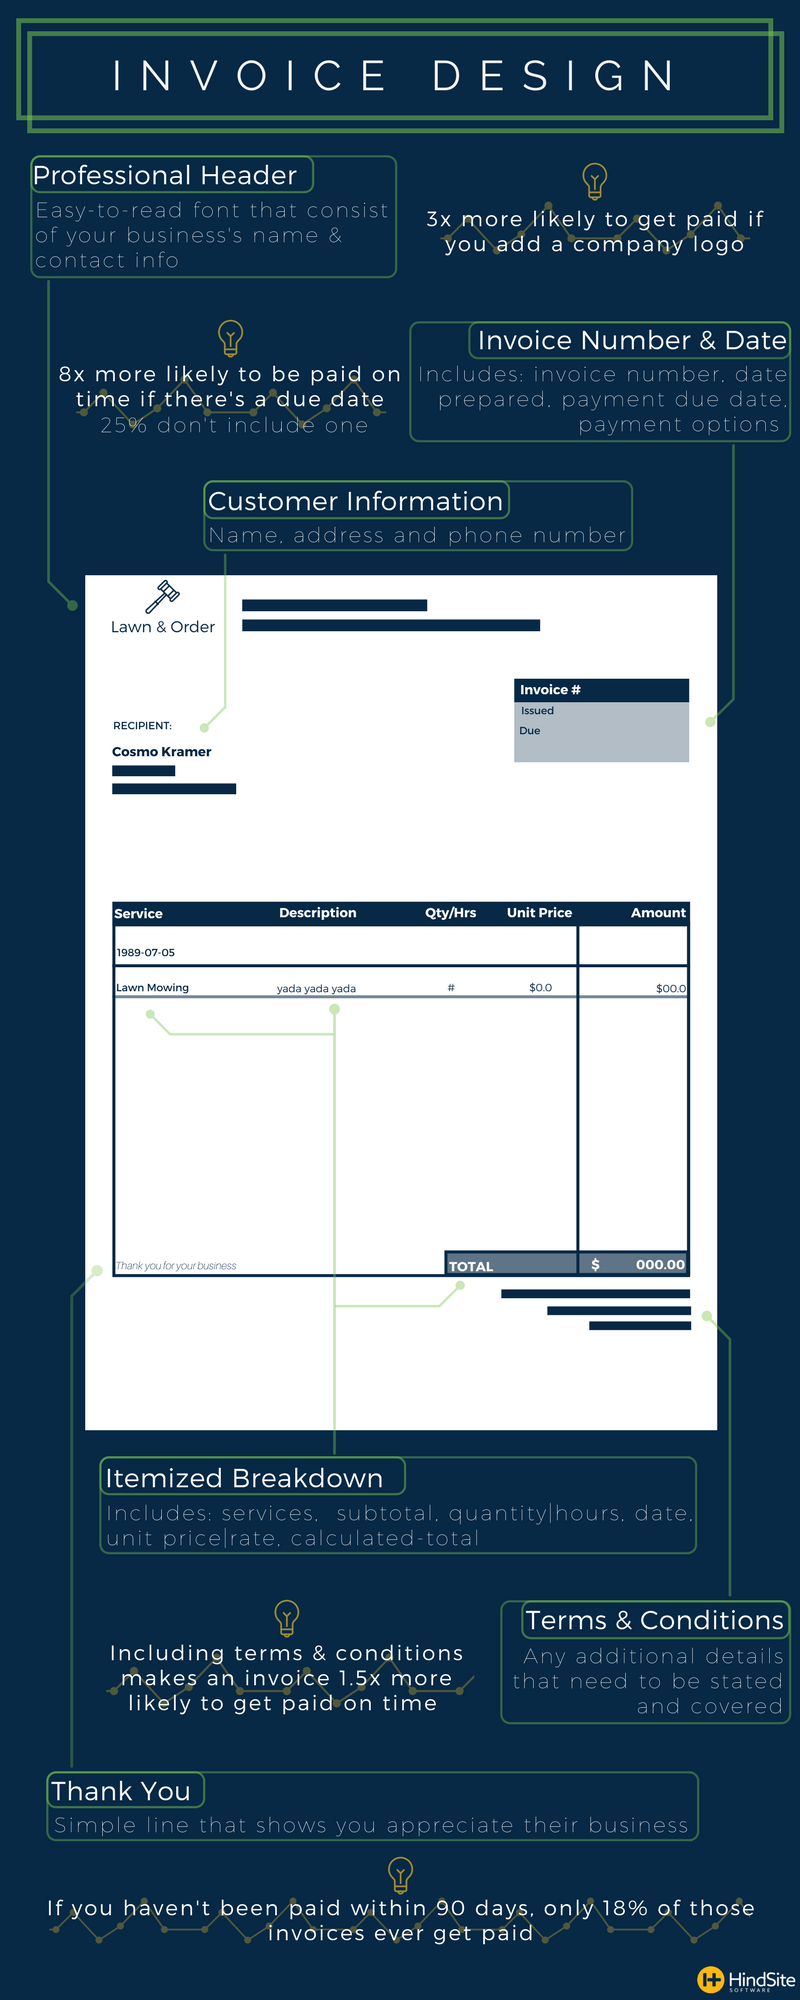 Invoice Infographic PartI (3).png